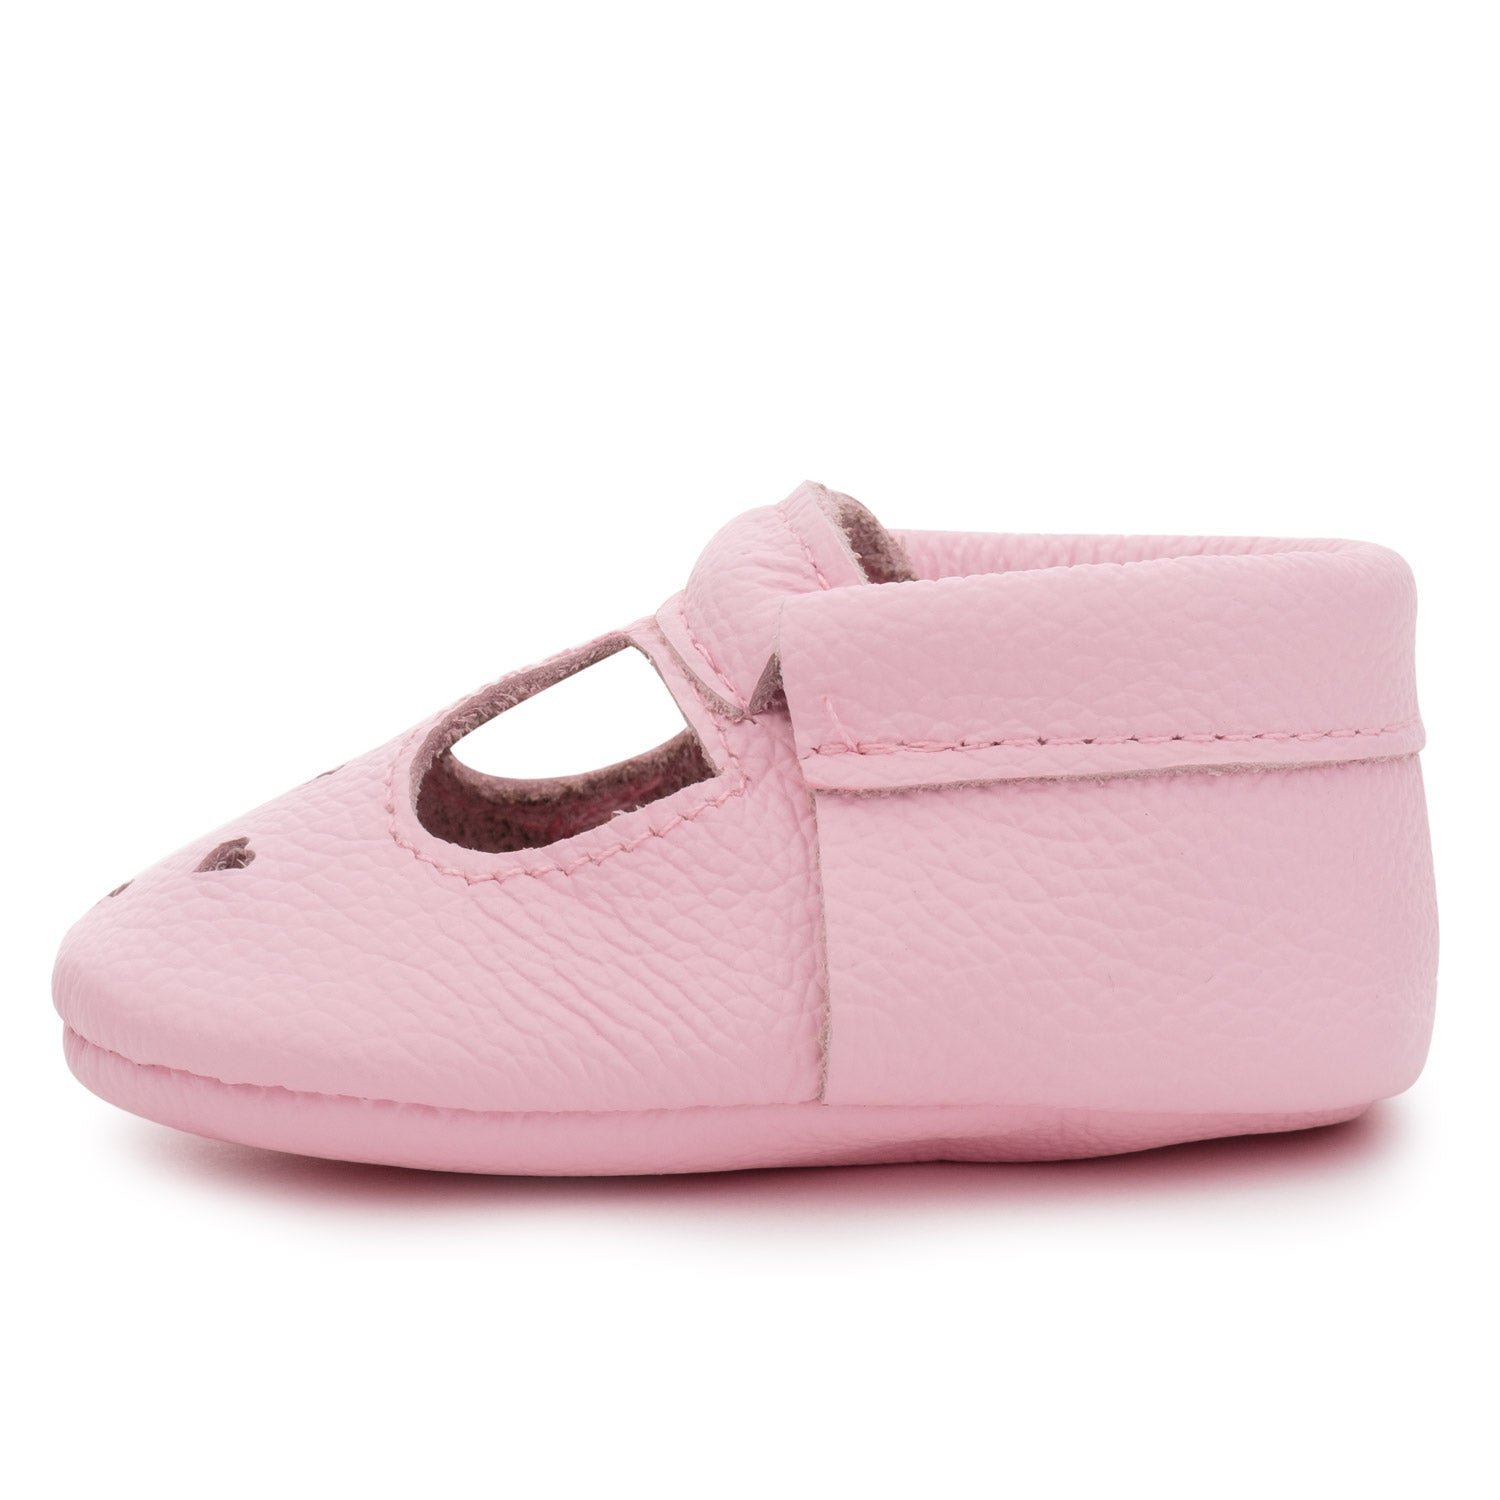 c517d8bd5a5cd Baby Mary Janes Shoes Online | BirdRock Baby